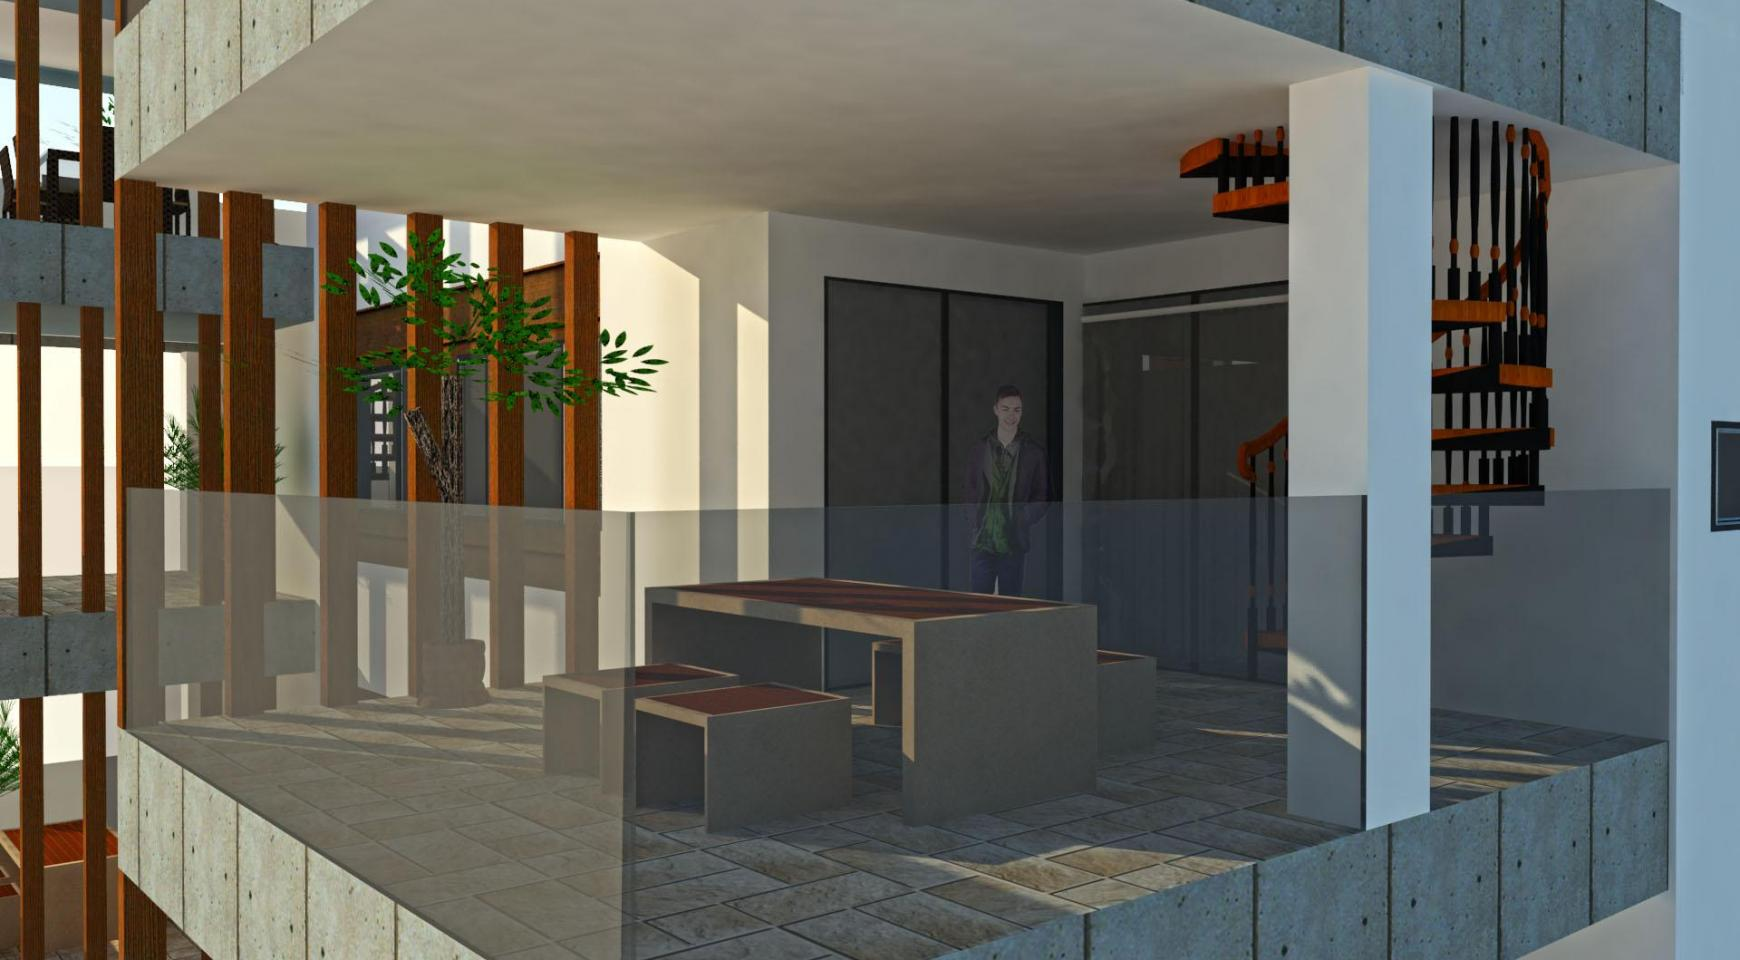 New 2 Bedroom Apartment in a Contemporary Building in the Town Centre - 4